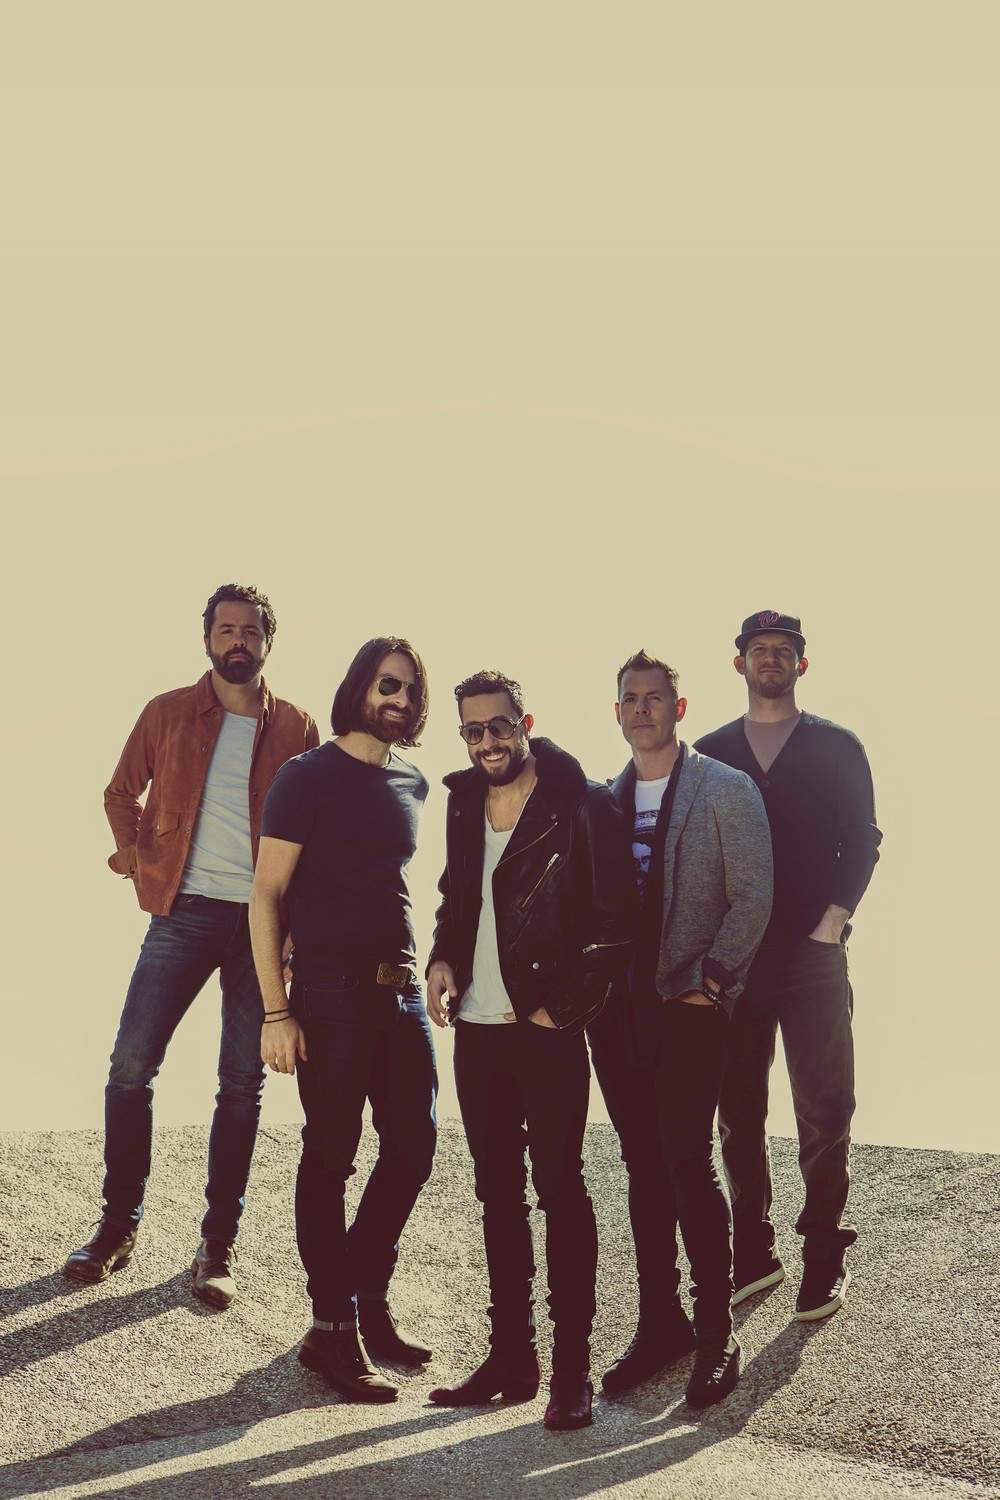 Country band Old Dominion will play at the St. Augustine Amphitheatre on Nov. 30.